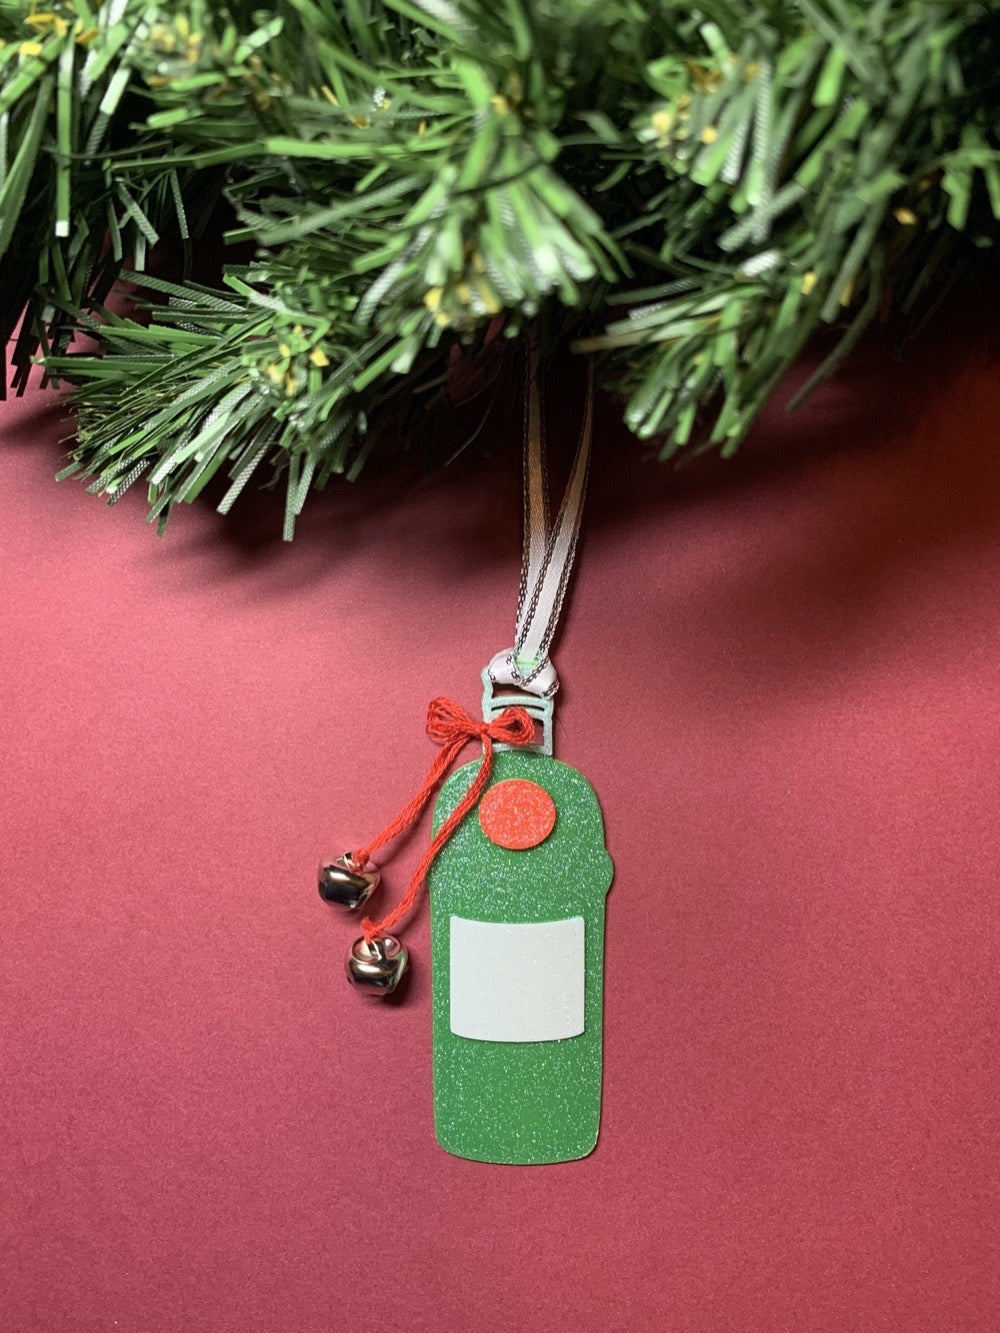 Gin-gle Bells 3D Printed Ornament